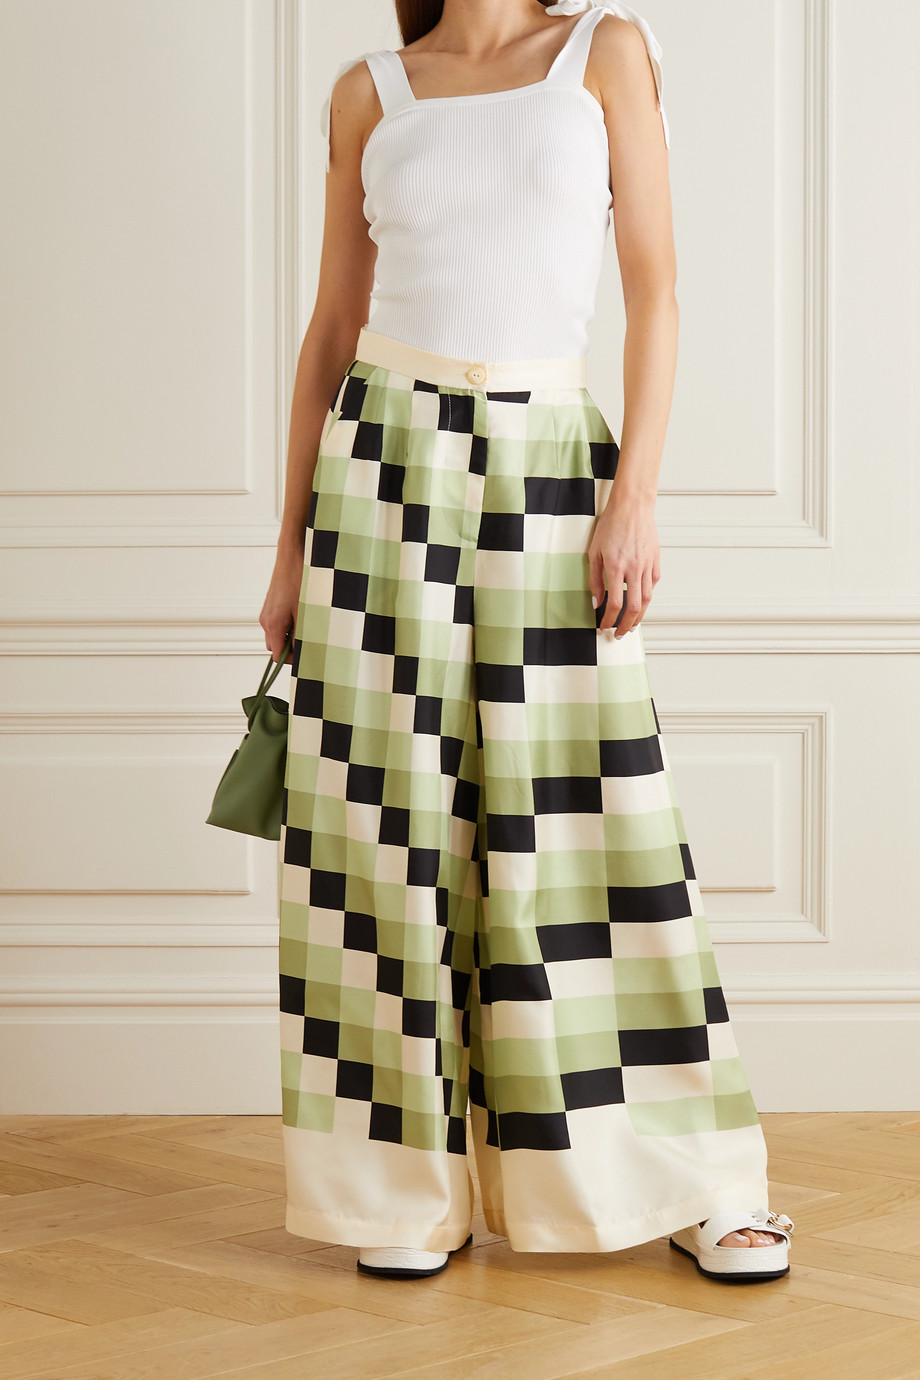 LOUISA PARRIS + NET SUSTAIN The Vienna printed silk-twill wide-leg pants